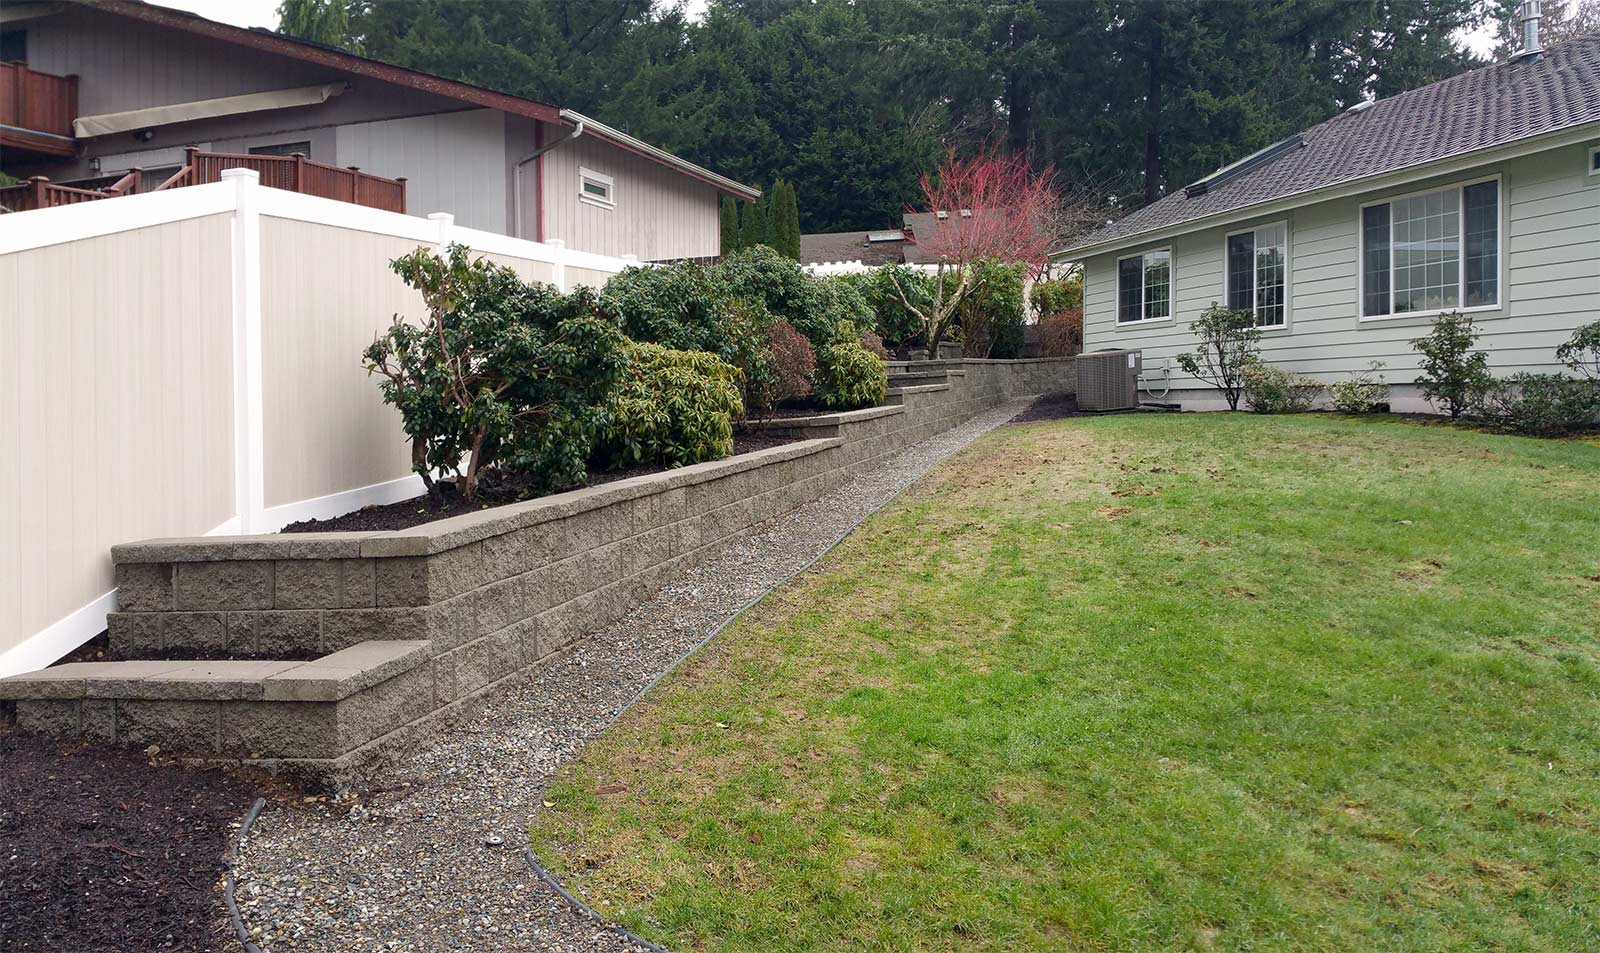 Tiered retaining wall with complementing vinyl fence. Point to the image to see how it looked before the transformation.